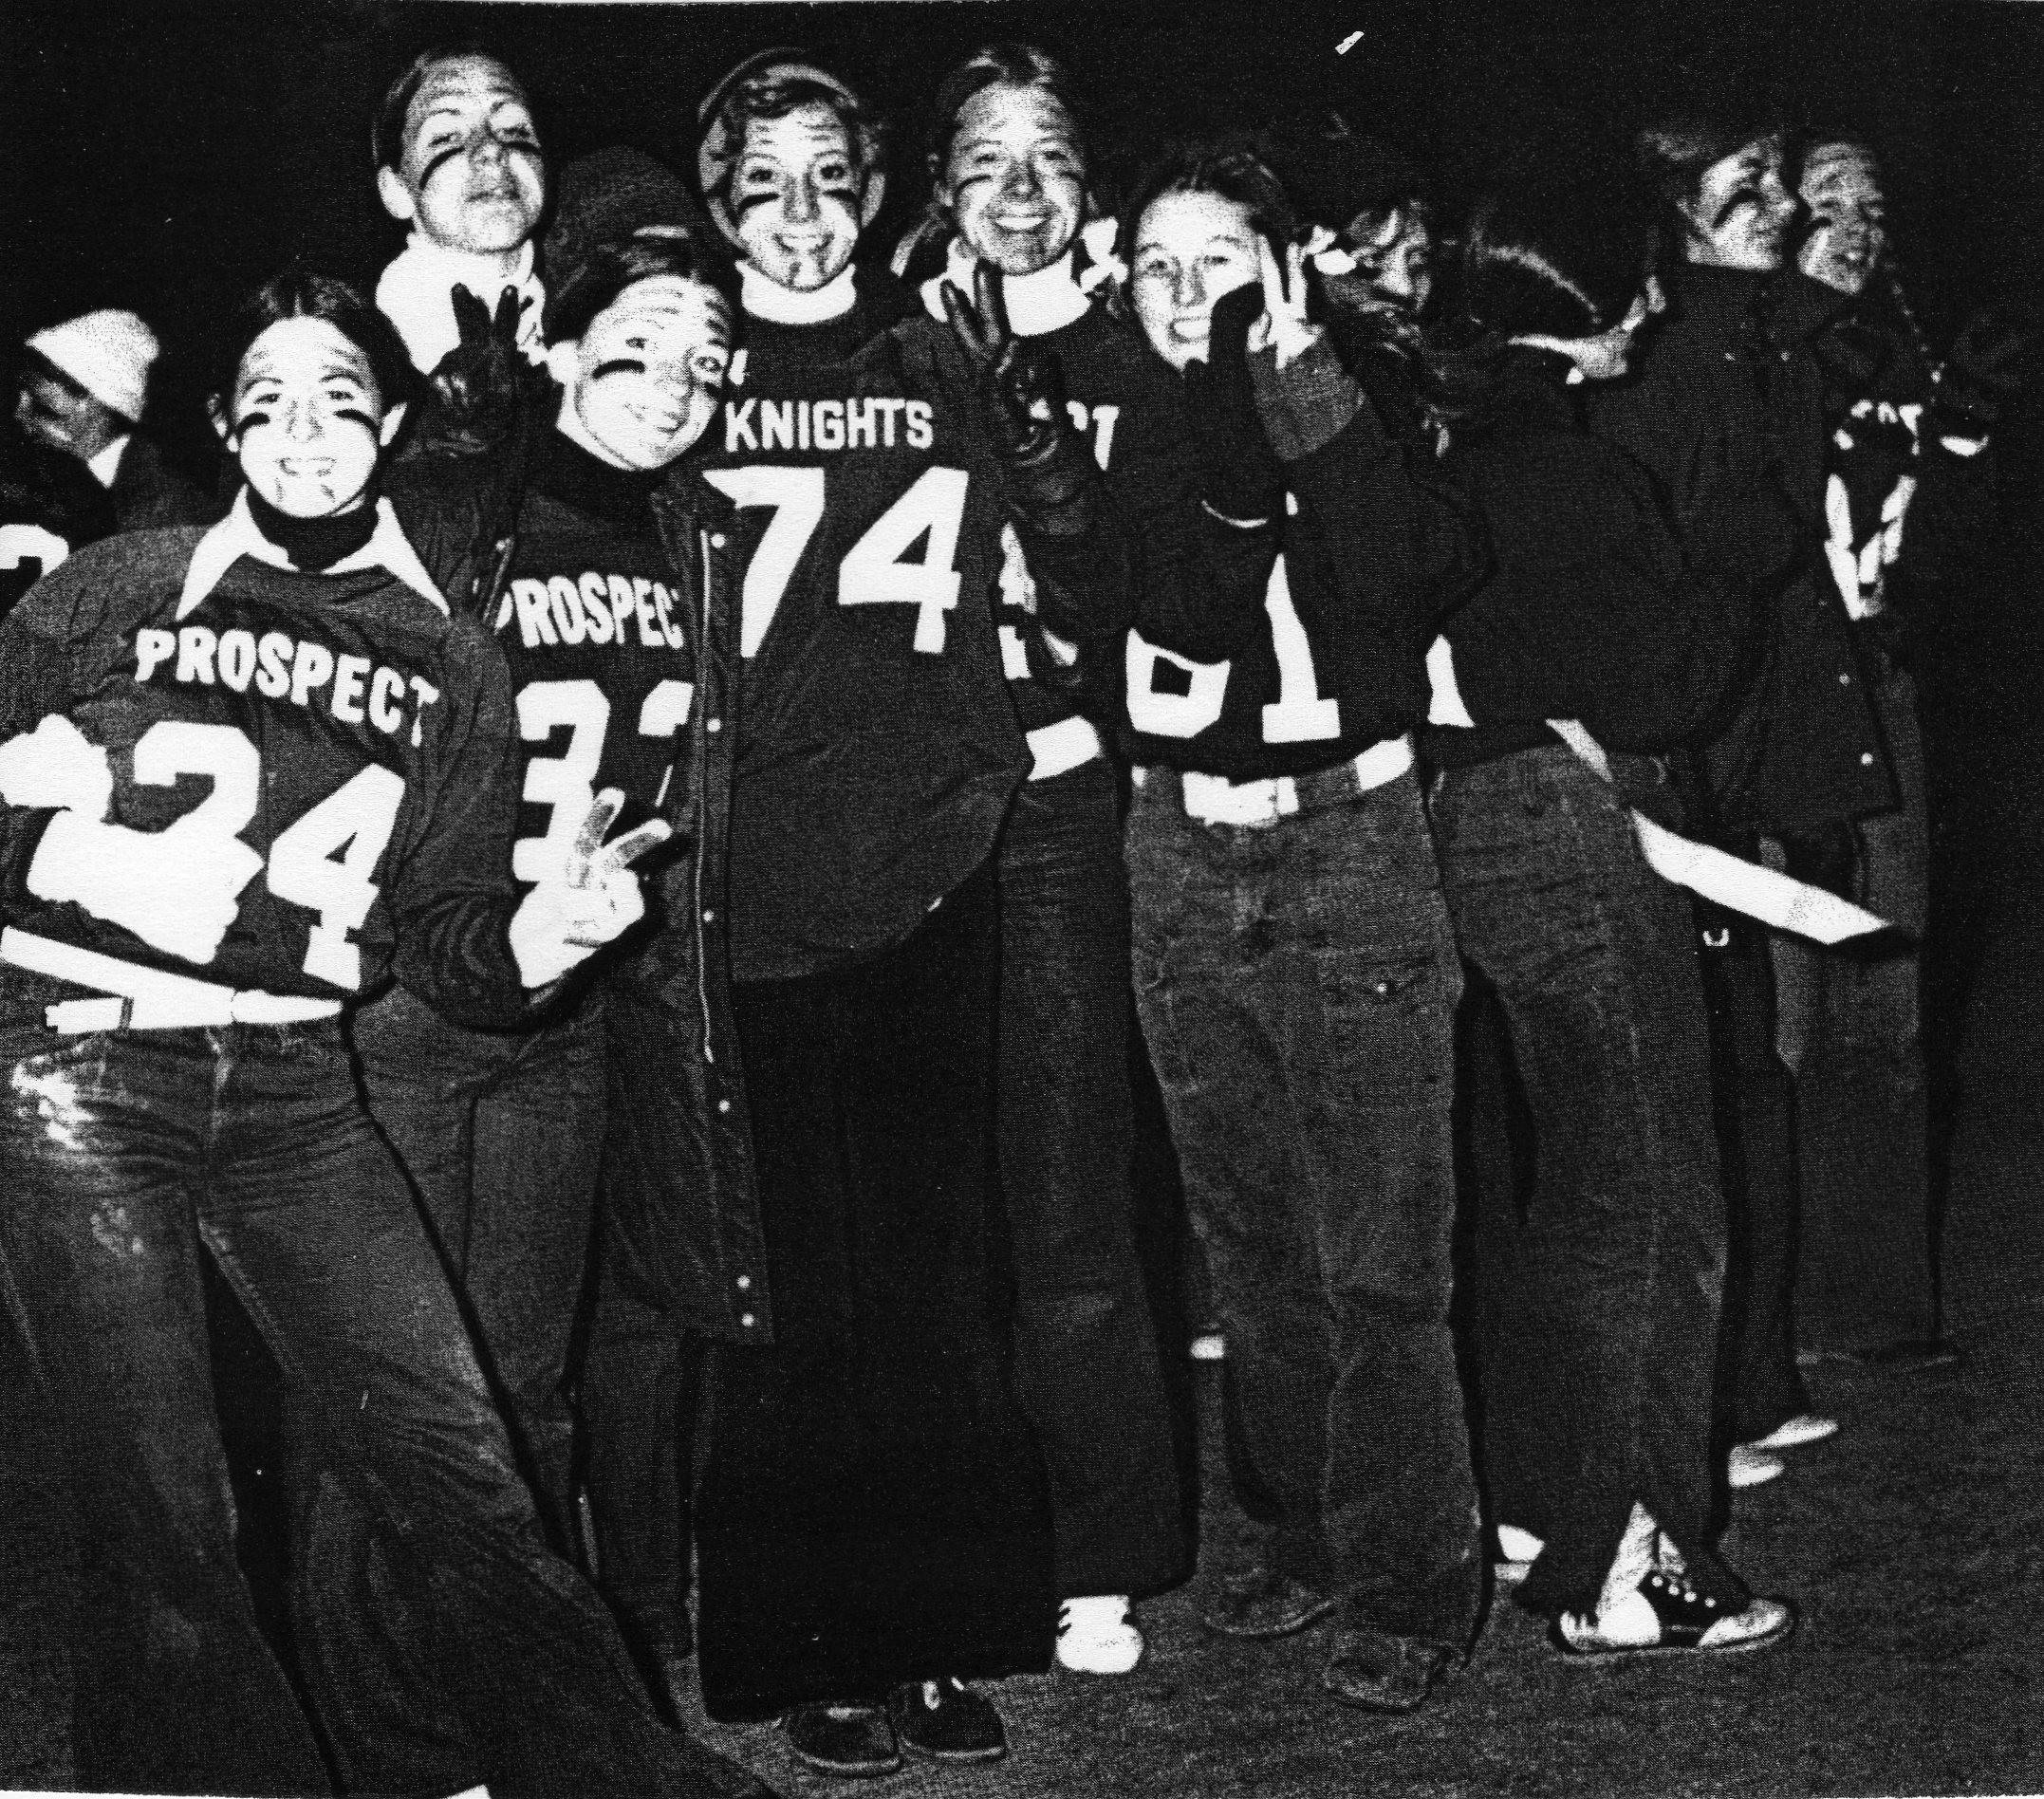 The Prospect High senior girls took on the junior girls in the powder puff football game. That may have been the only football game the senior class won that year.